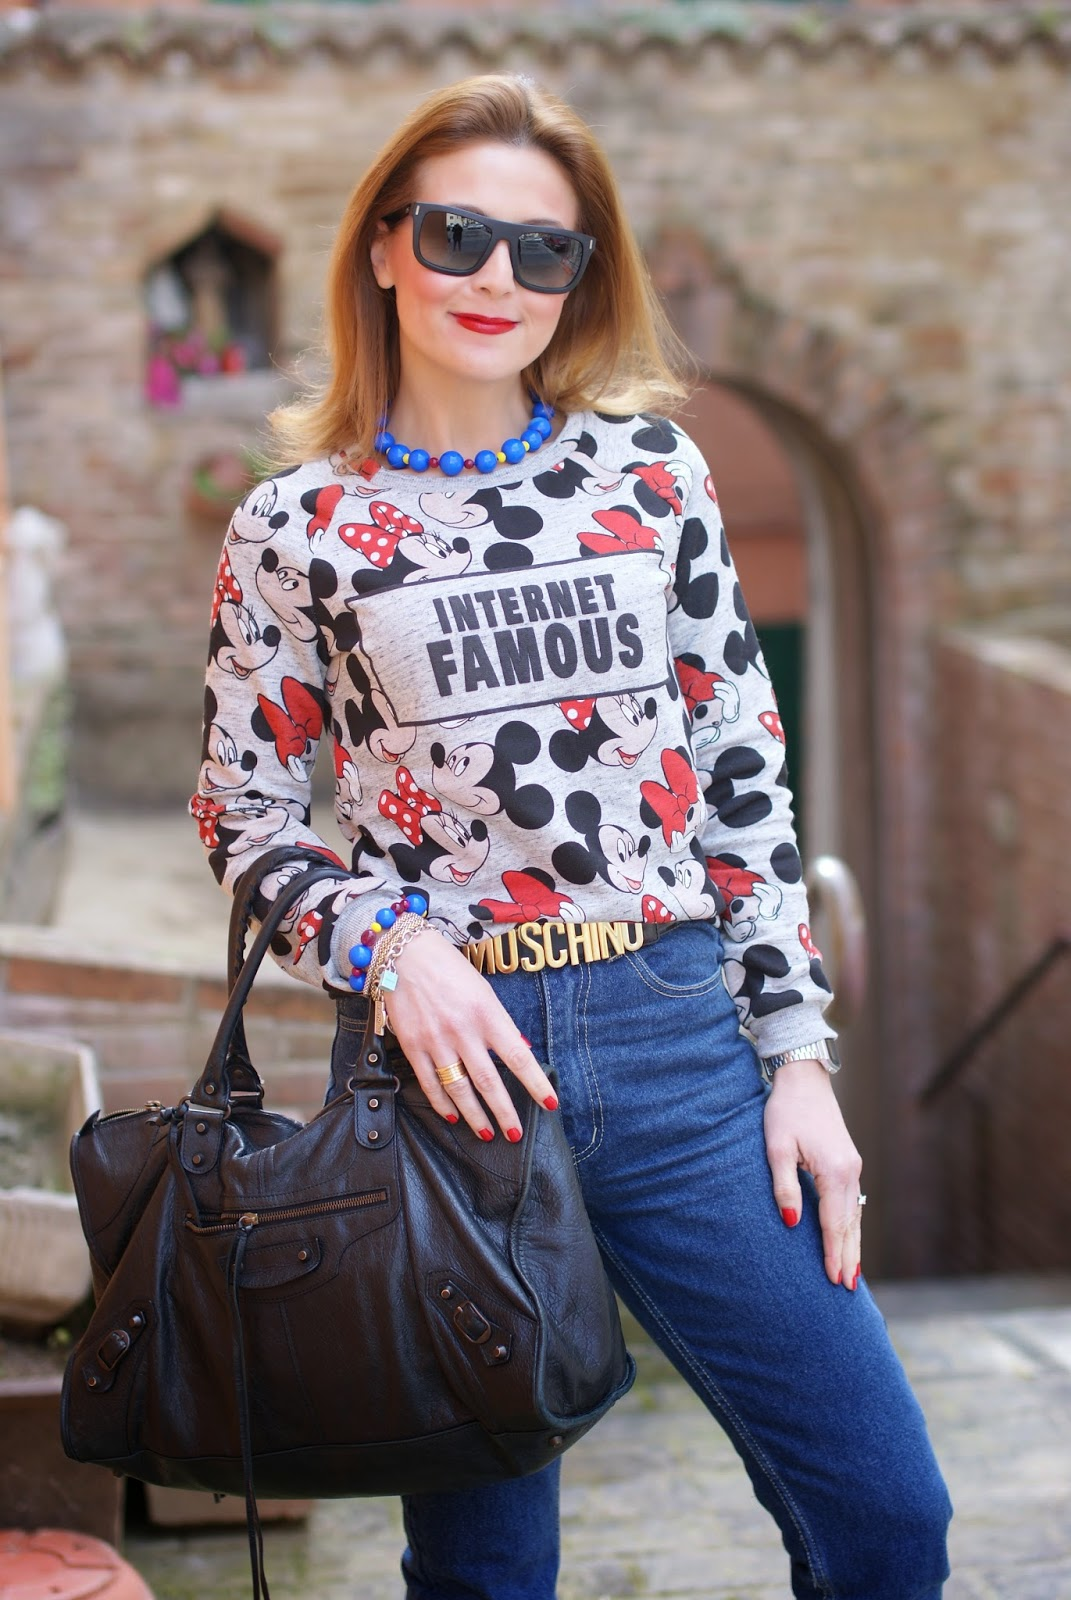 Internet Famous: 80s Inspired Casual Look